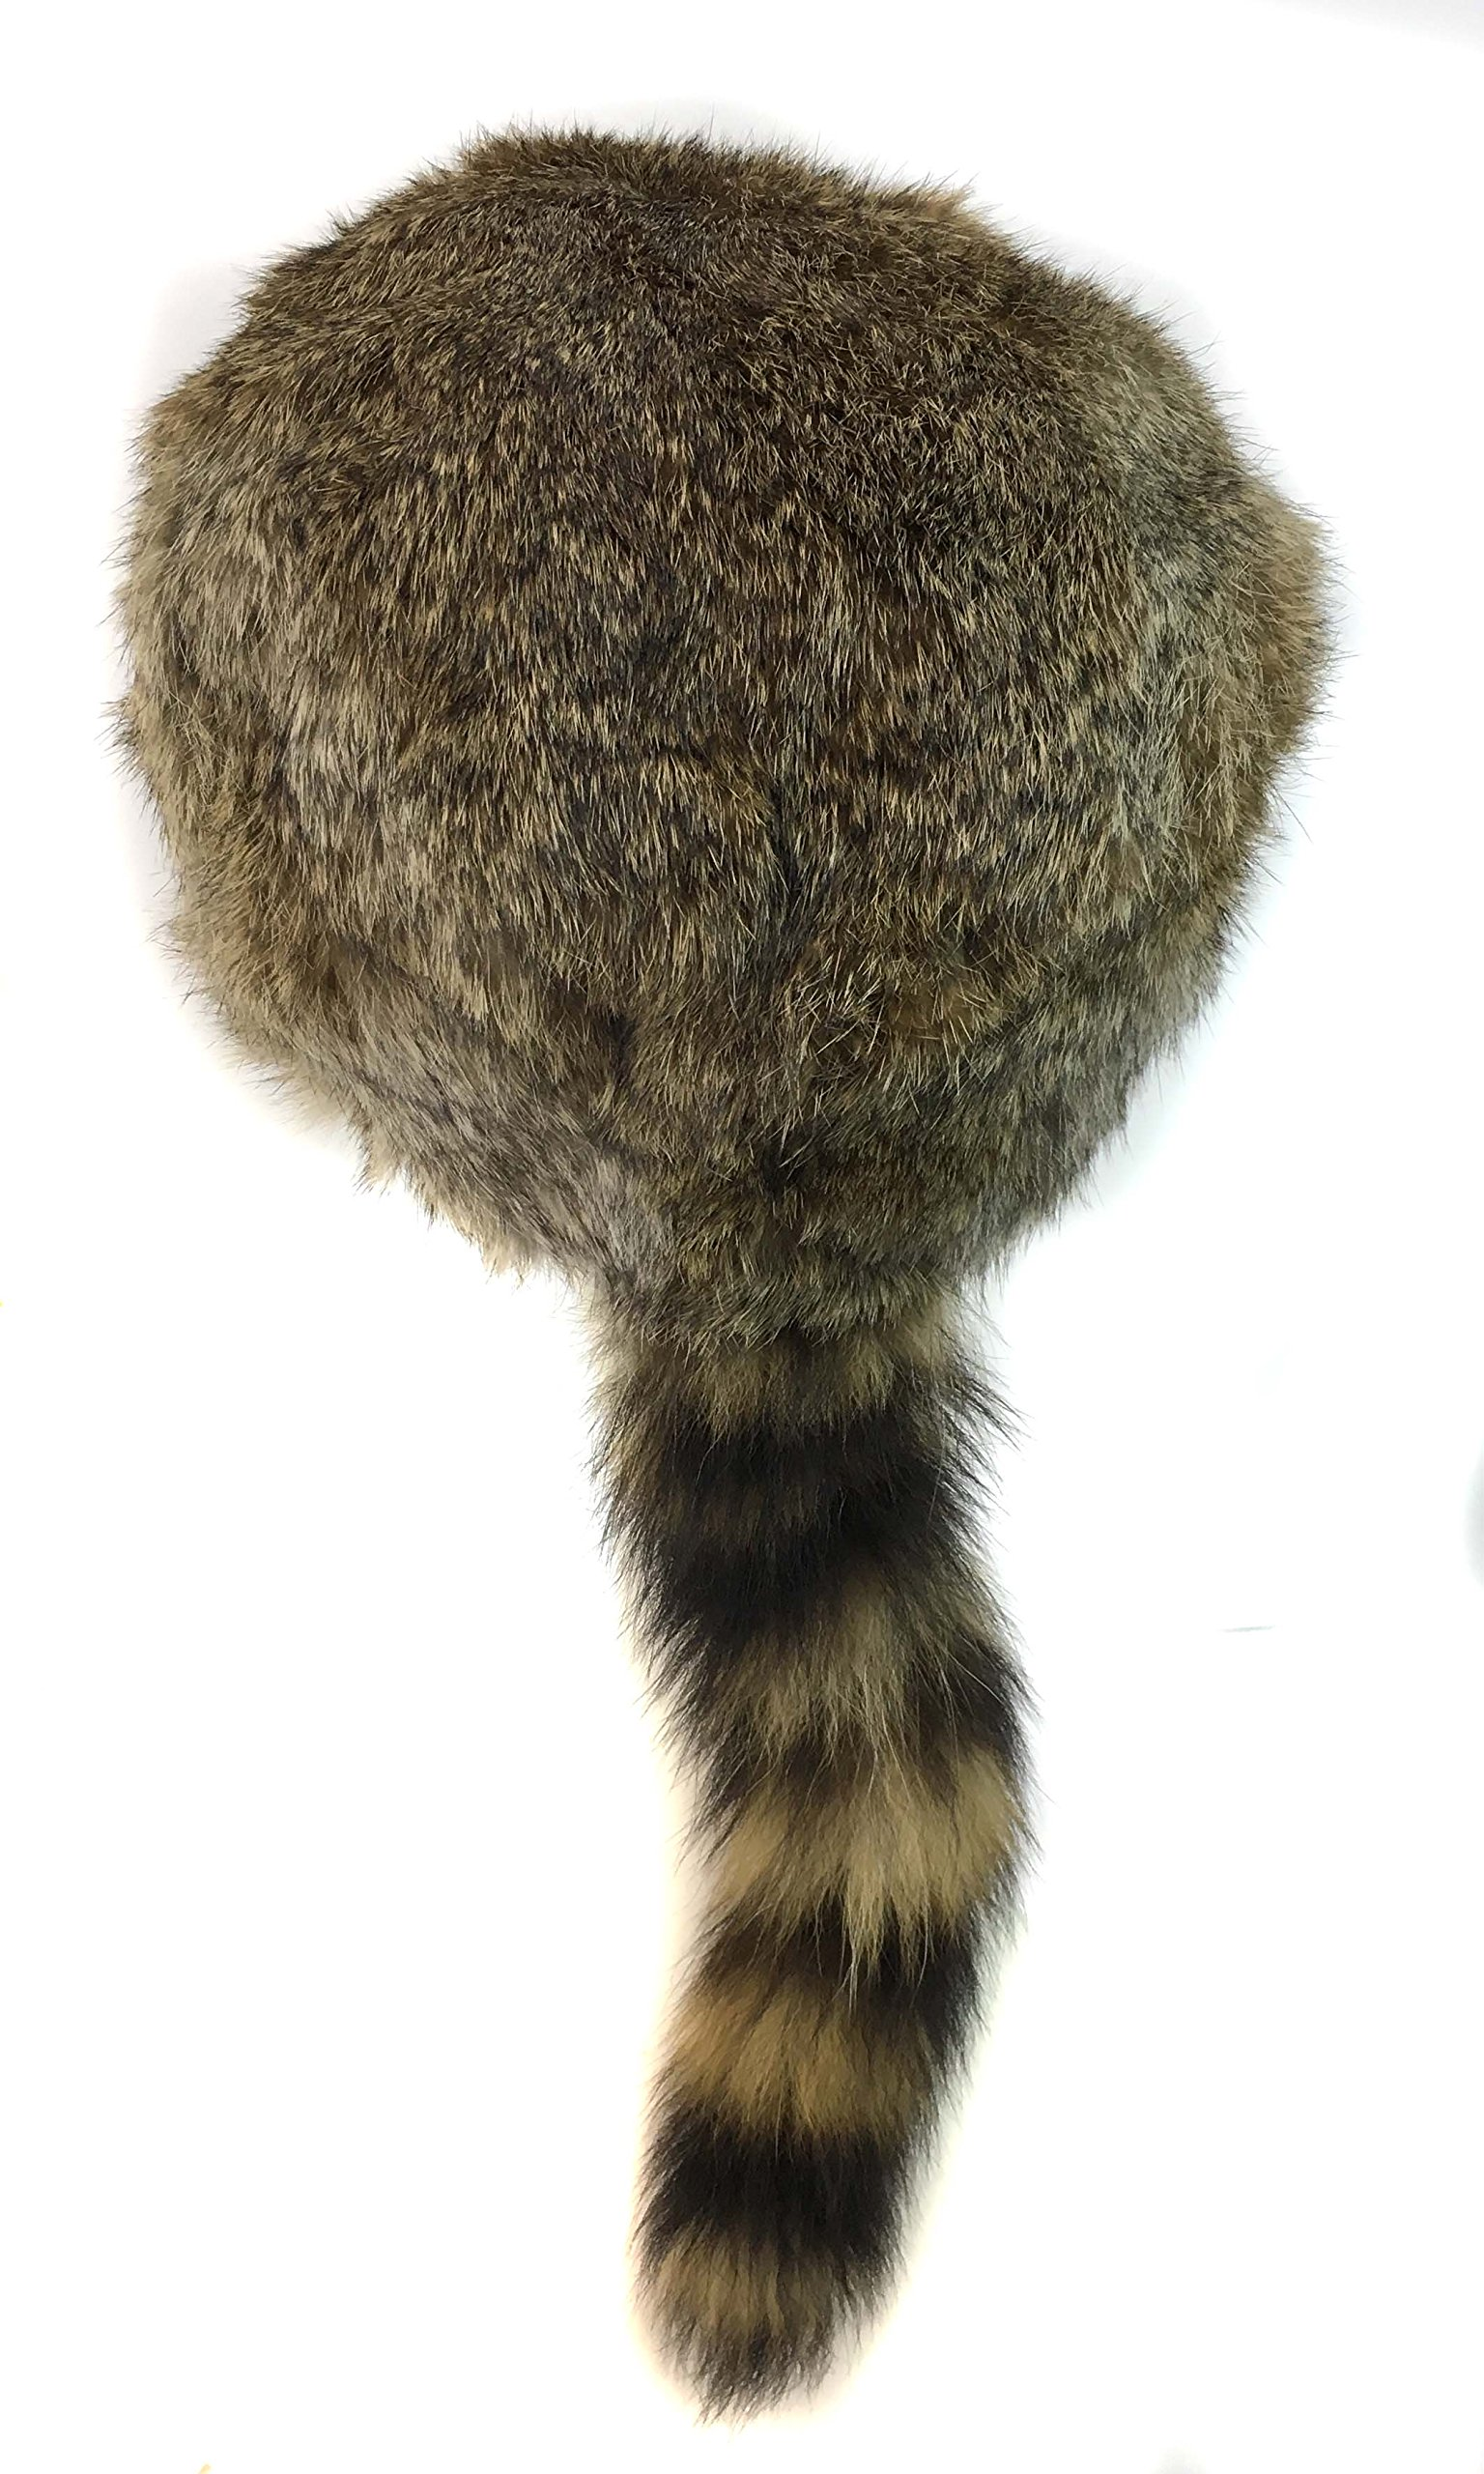 surell Coonskin Davy Crockett Hat - Rabbit Fur Crown - Raccoon Tail Hat Brwon